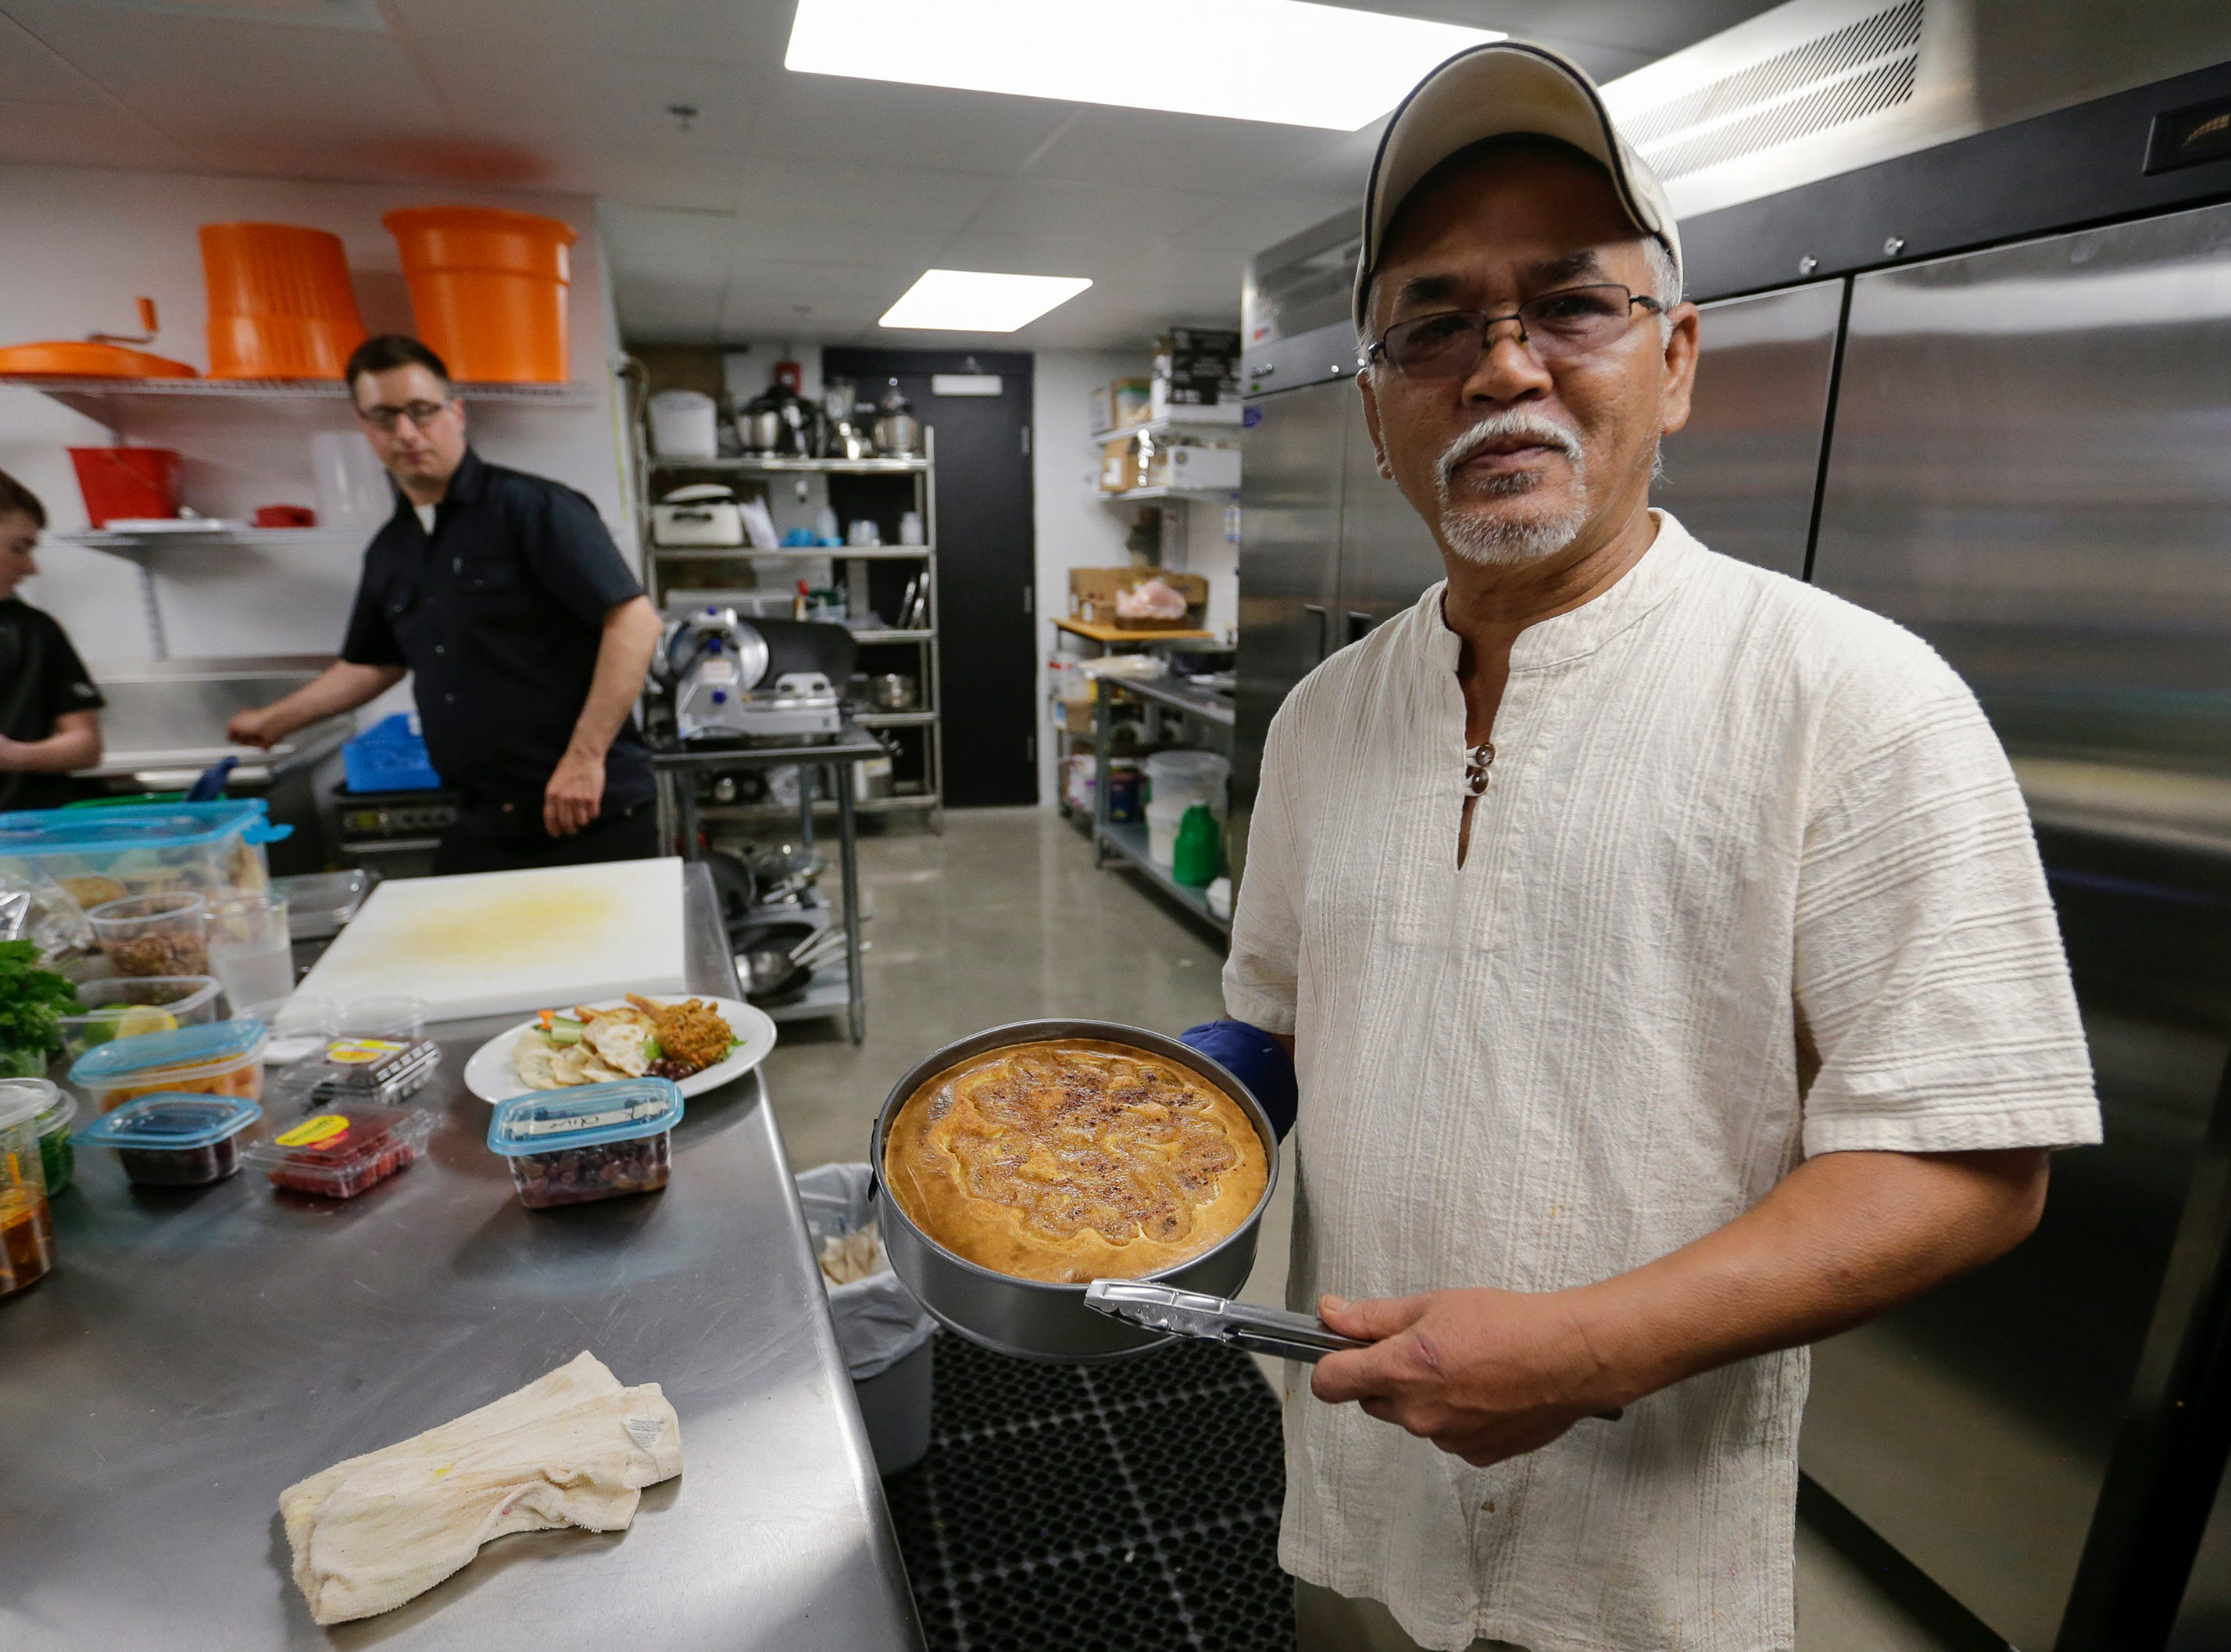 Chef Newey Boonperm shows off a new cheescake offering in the kitchen of the Waterfront Wine Bar Saturday, May 4, 2019, in Manitowoc, Wis. Joshua Clark/USA TODAY NETWORK-Wisconsin